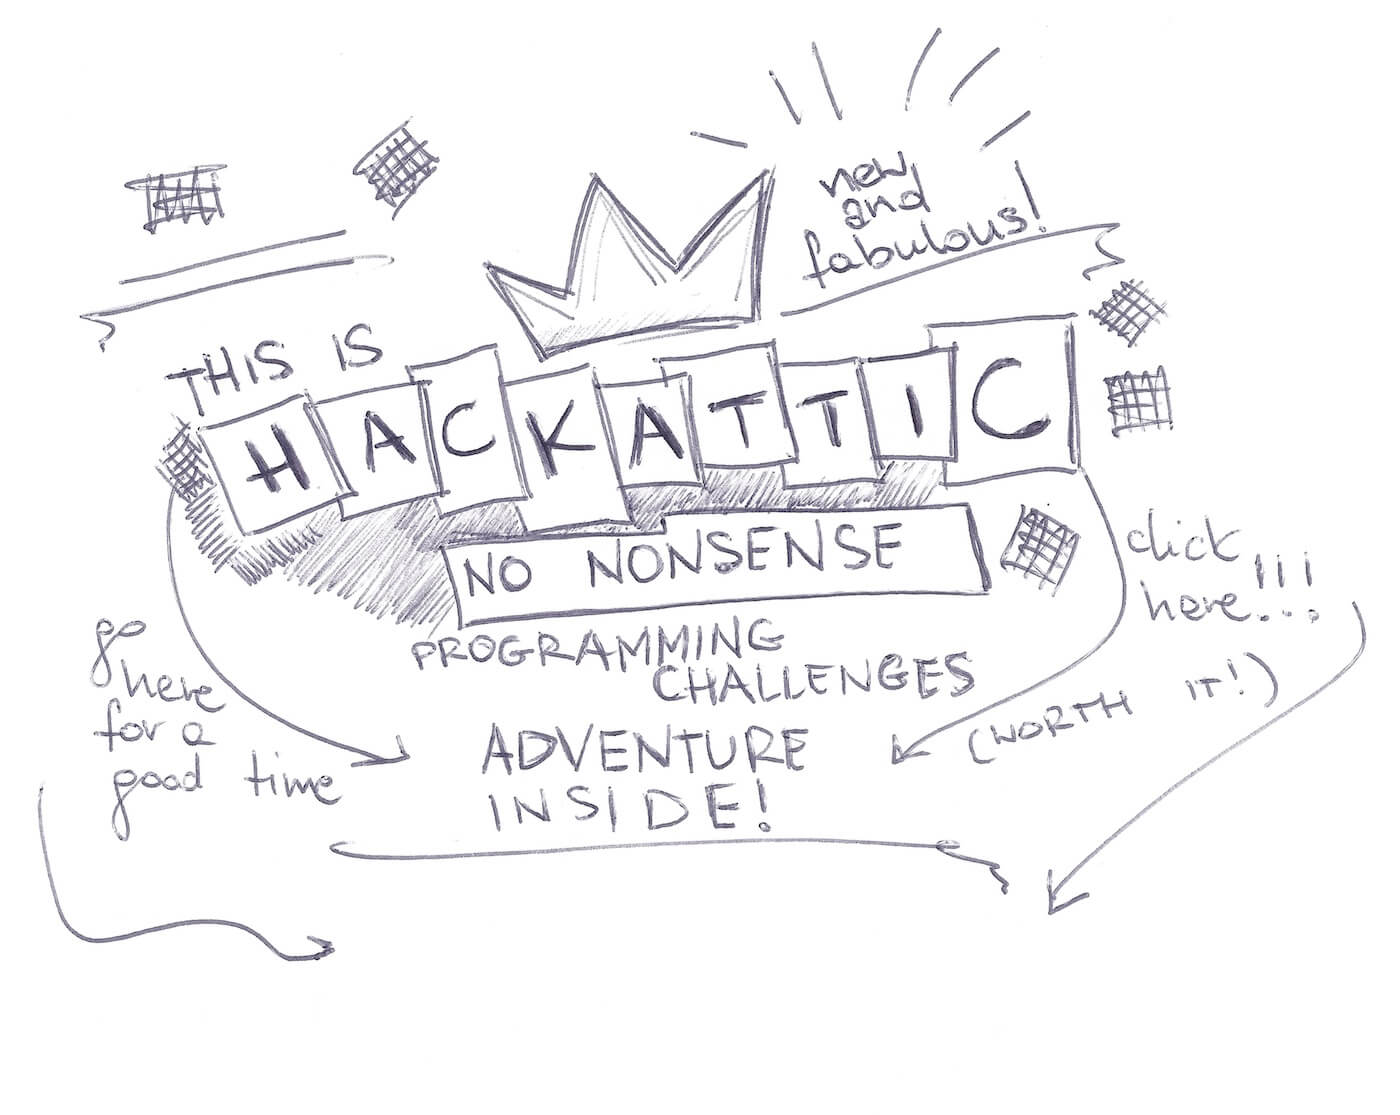 hackattic: no-nonsense programming challenges